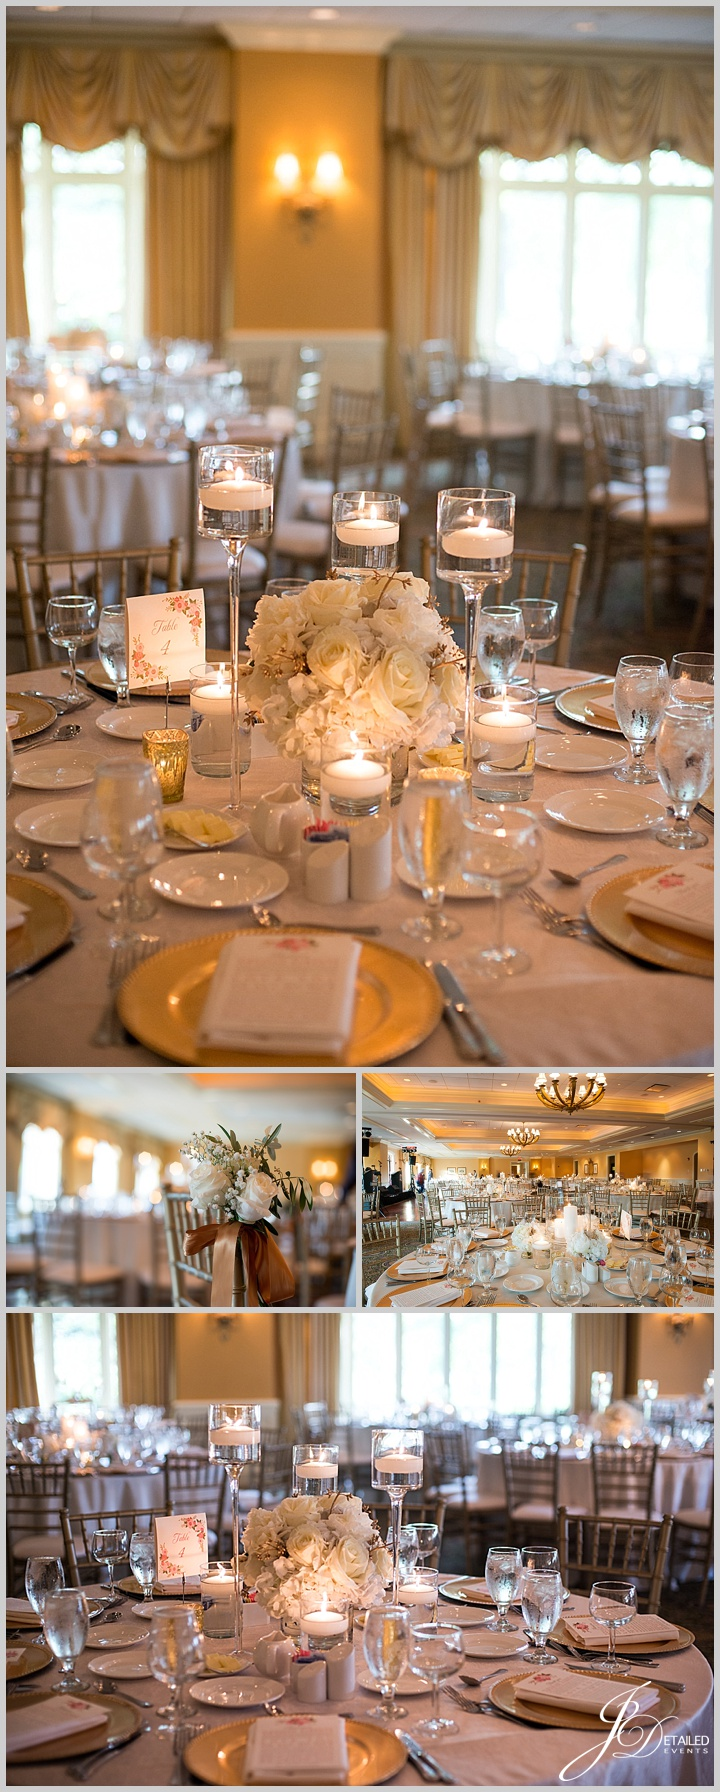 jdetailed-events-chicago-wedding-planner_0618